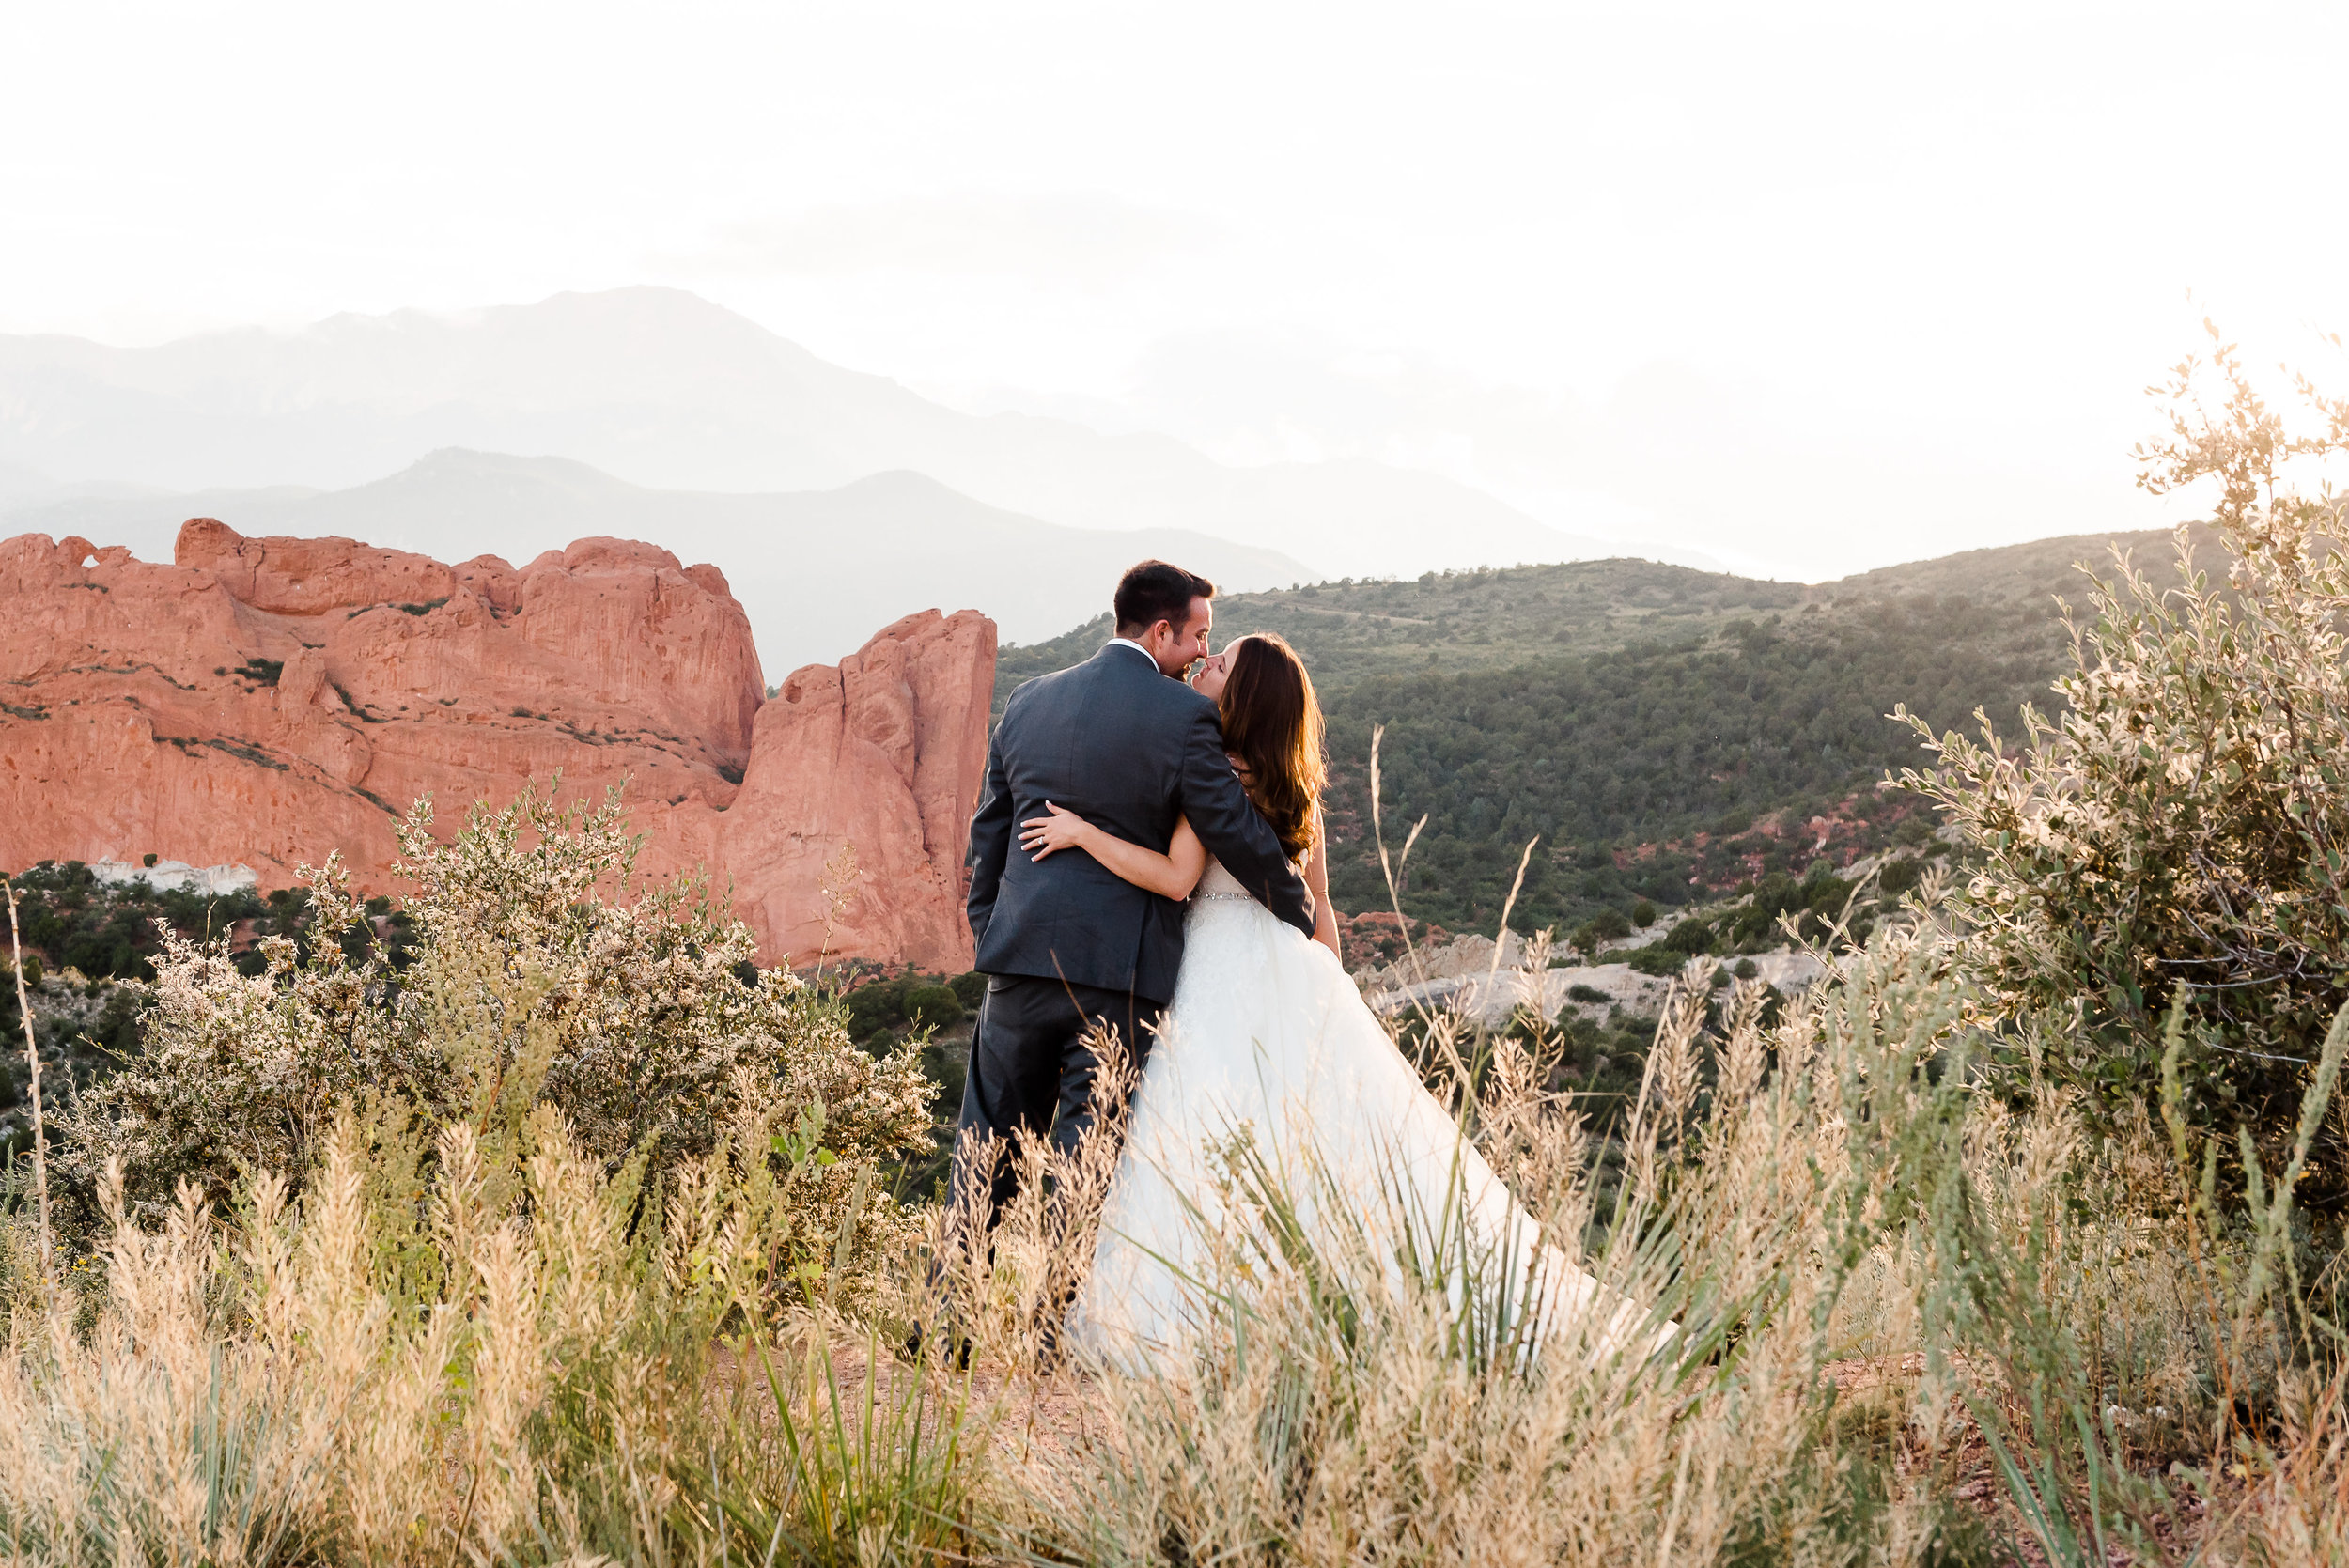 The decision to hire Laura + Nathan as our photographers was THE best decision we made for our wedding. They helped us create picture-perfect moments that we will treasure forever. They made taking photos enjoyable and made our day more special than we could have ever imagined. - - KIM + MICHAEL -